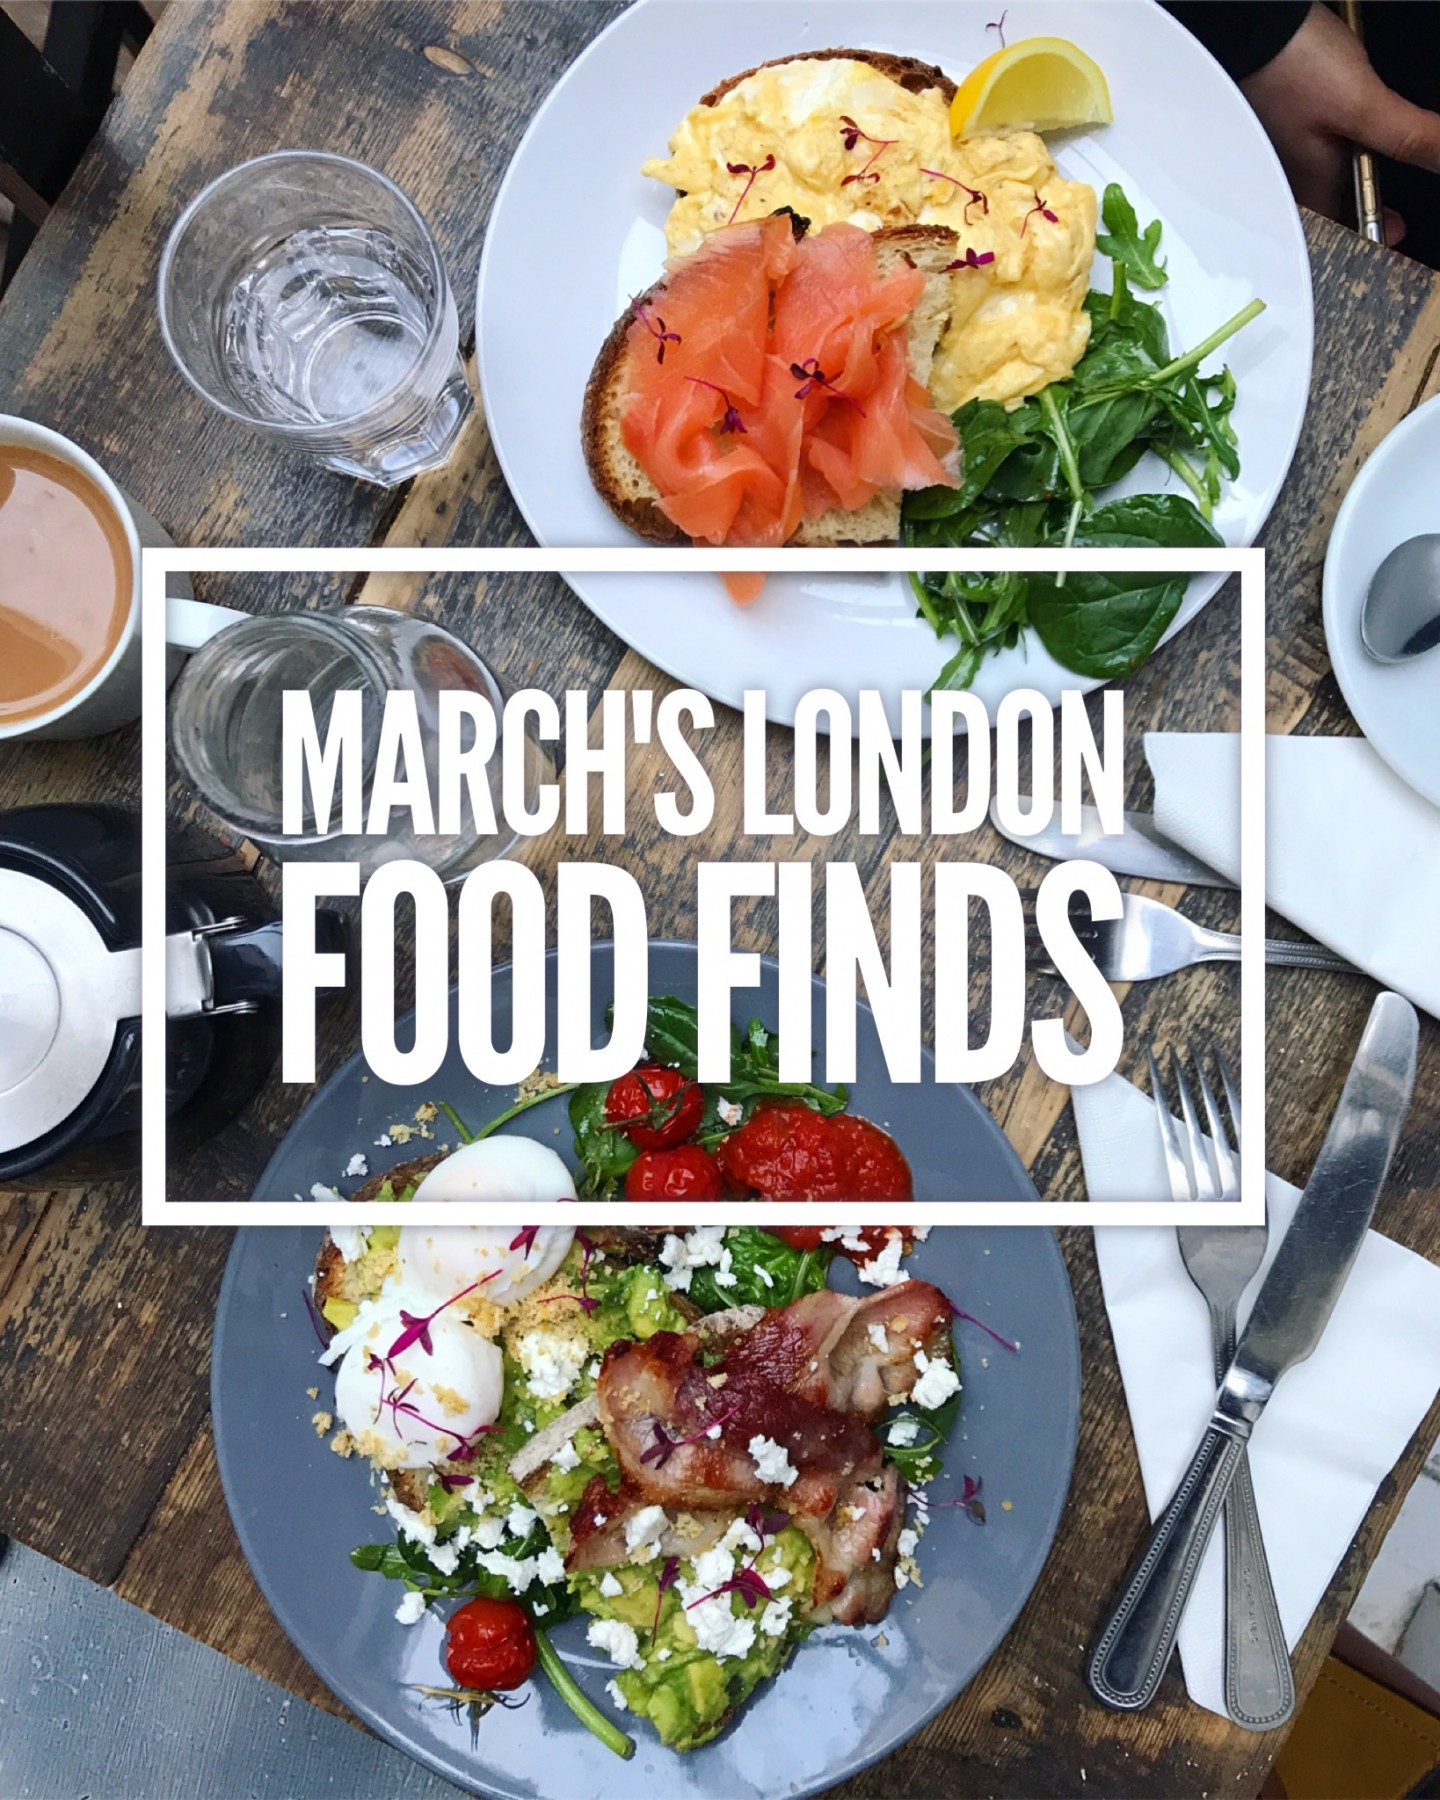 March's London Food Finds (2018) : Picks From London's Best Restaurants